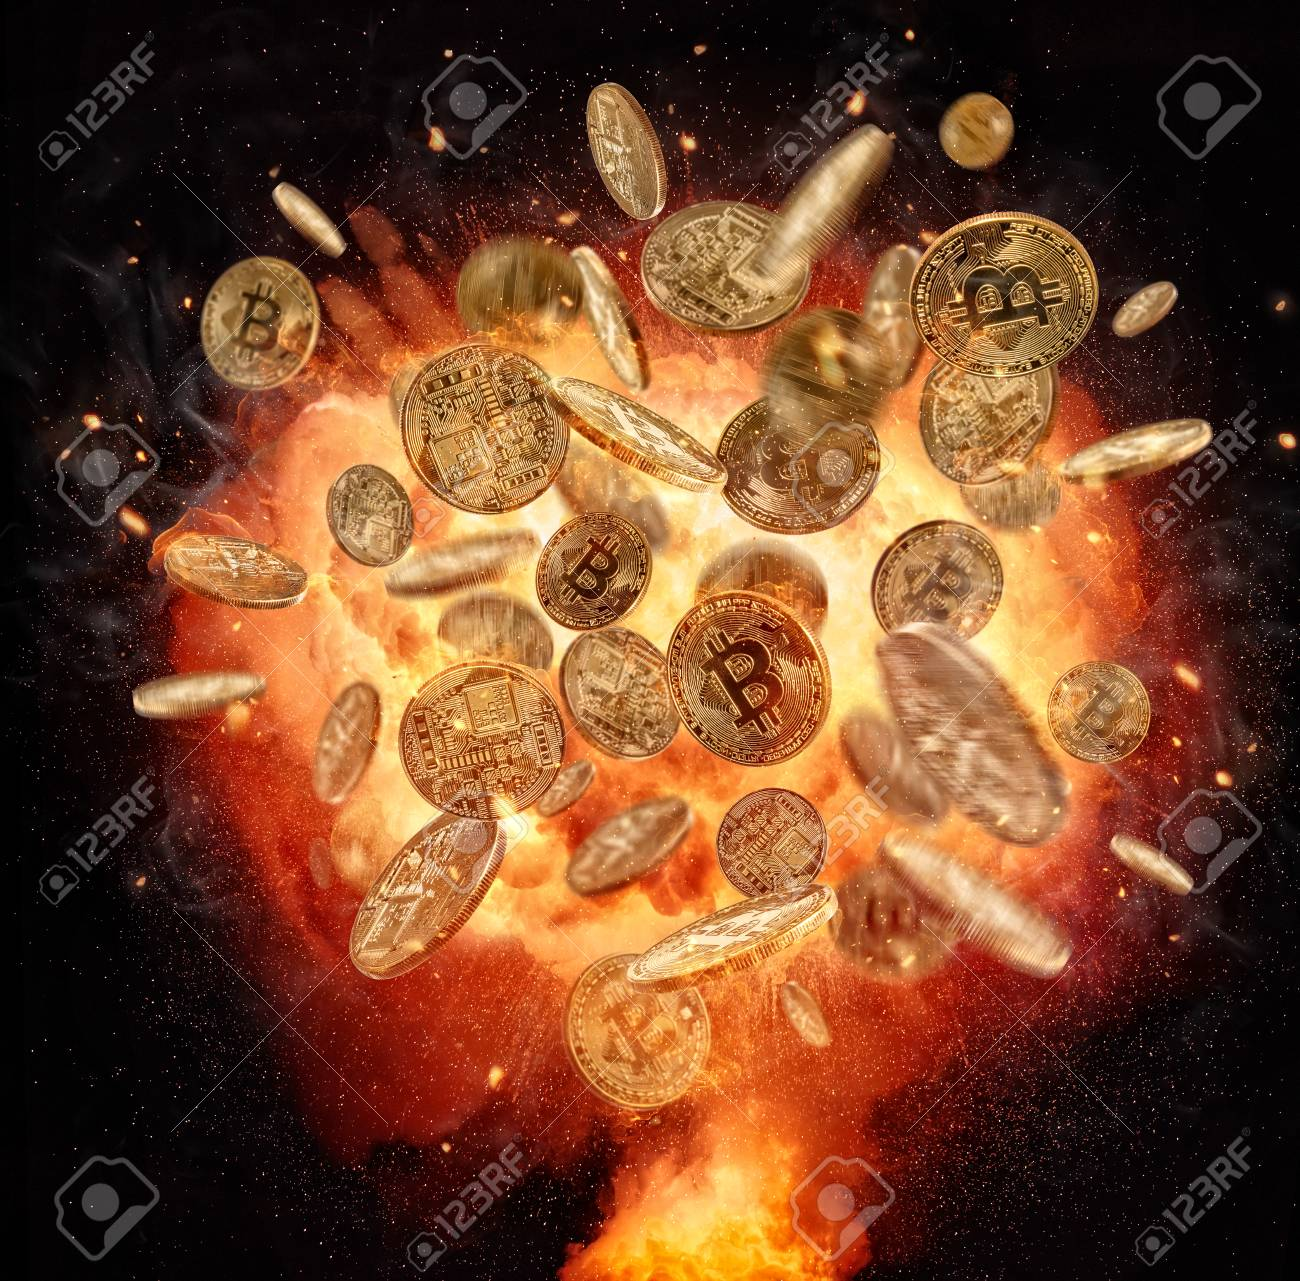 Fire explosion of Bitcoins crypto currency symbol, isolated on black background. Concept of digital currency and risk - 93159851